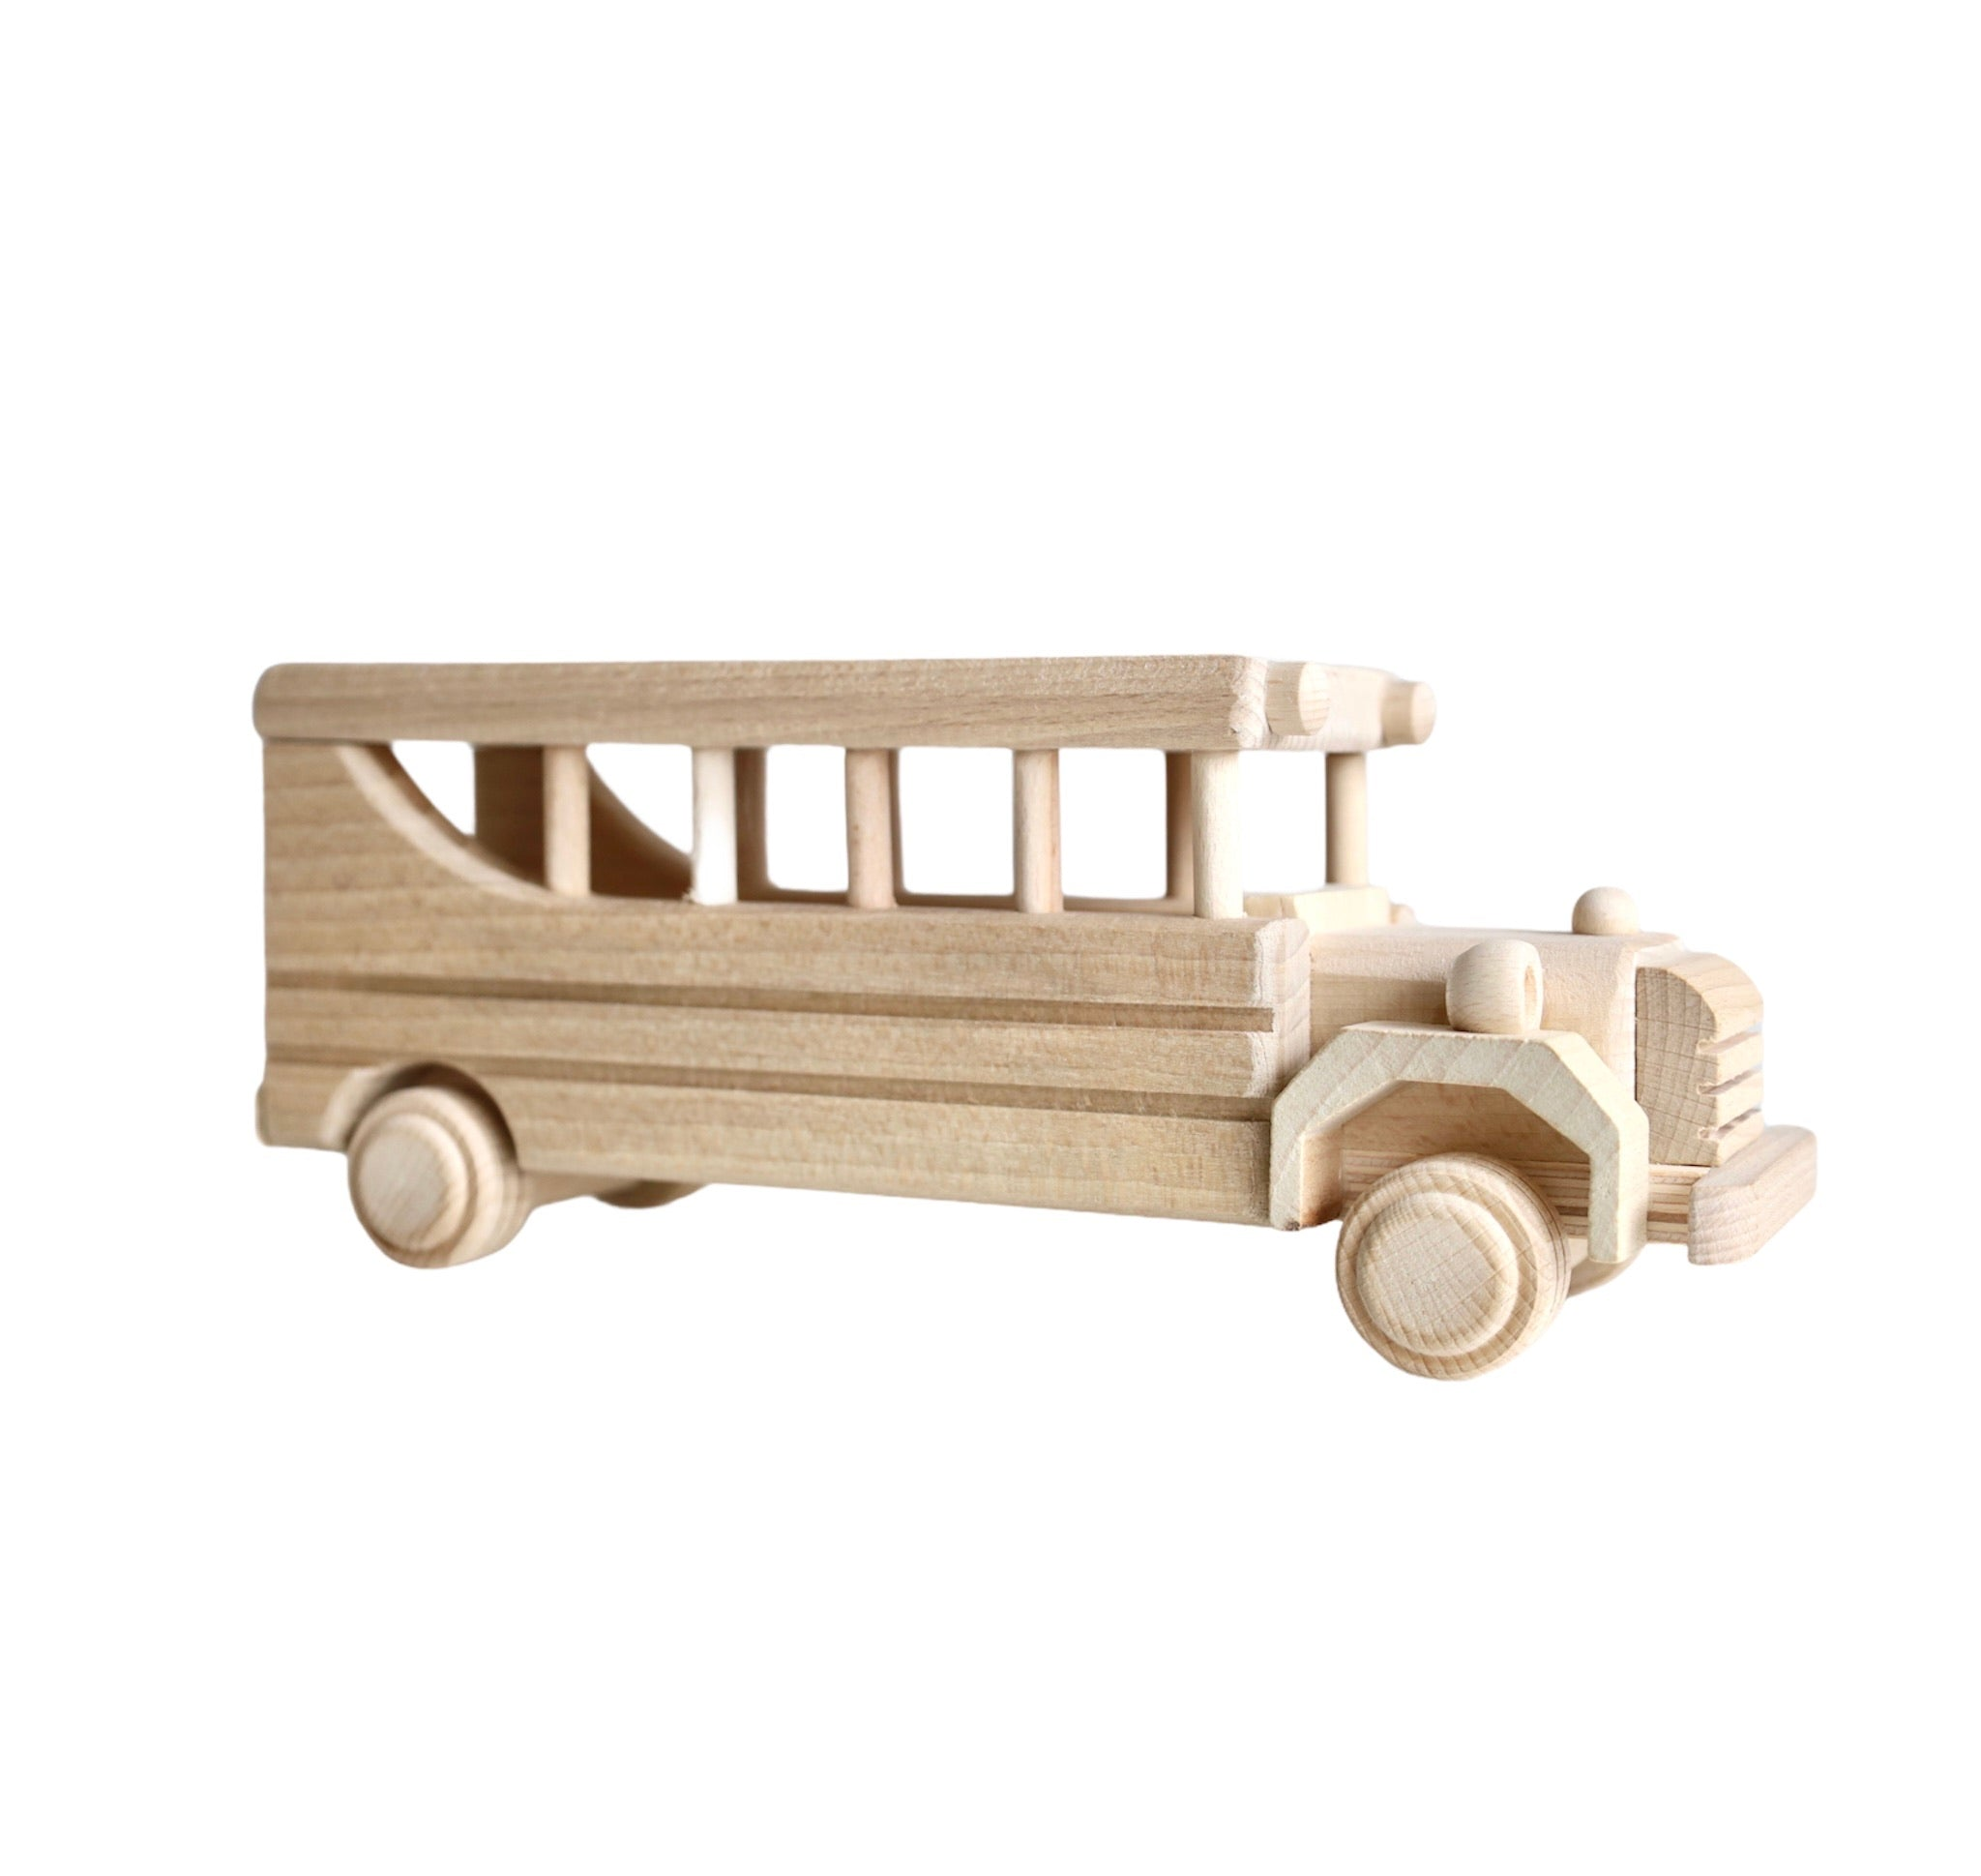 Bus - wooden toy